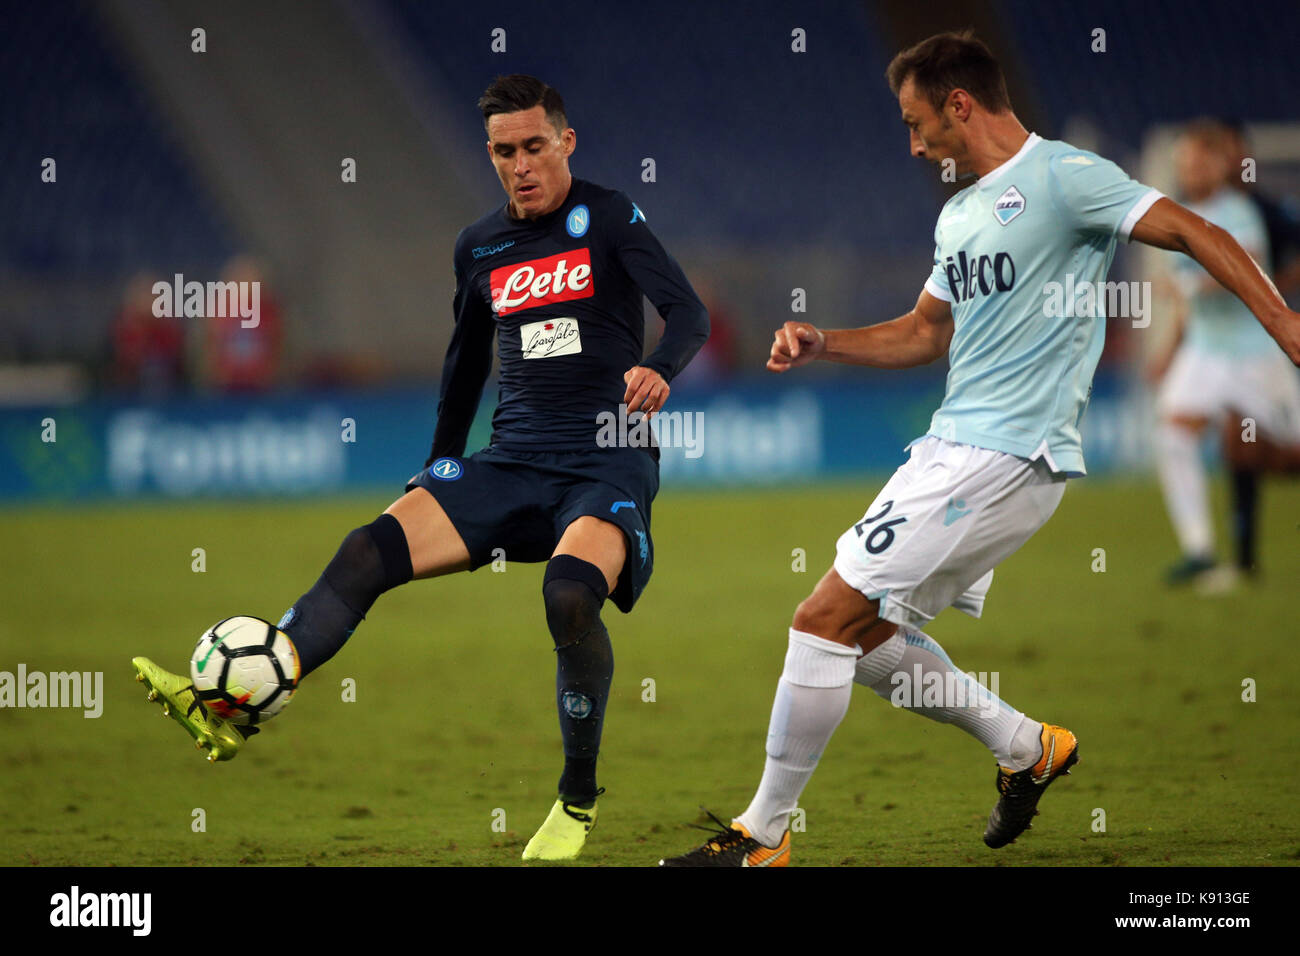 Italy, Rome, September 20, 2017:Hamsik in action during the football match Serie A Lazio vs Napoli in Olimpic Stadium - Stock Image